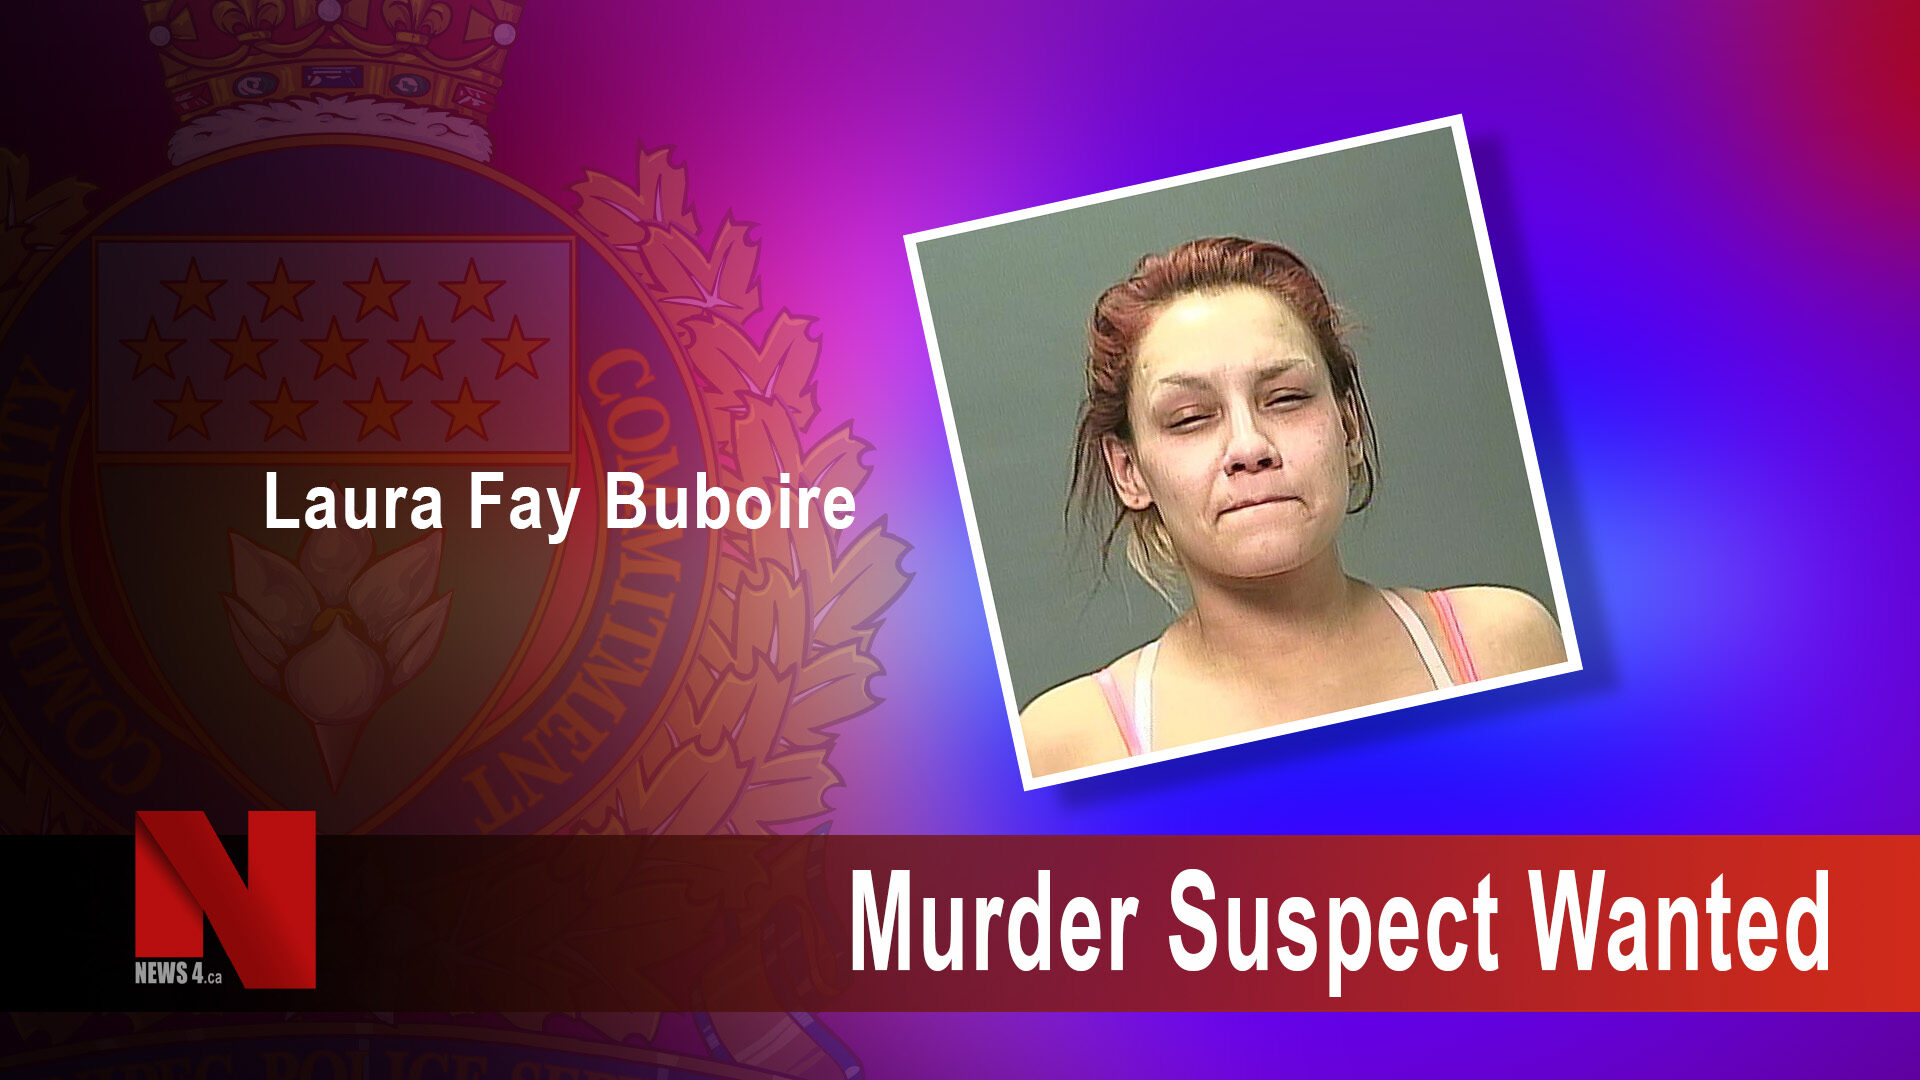 Laura Fay Buboire Wanted